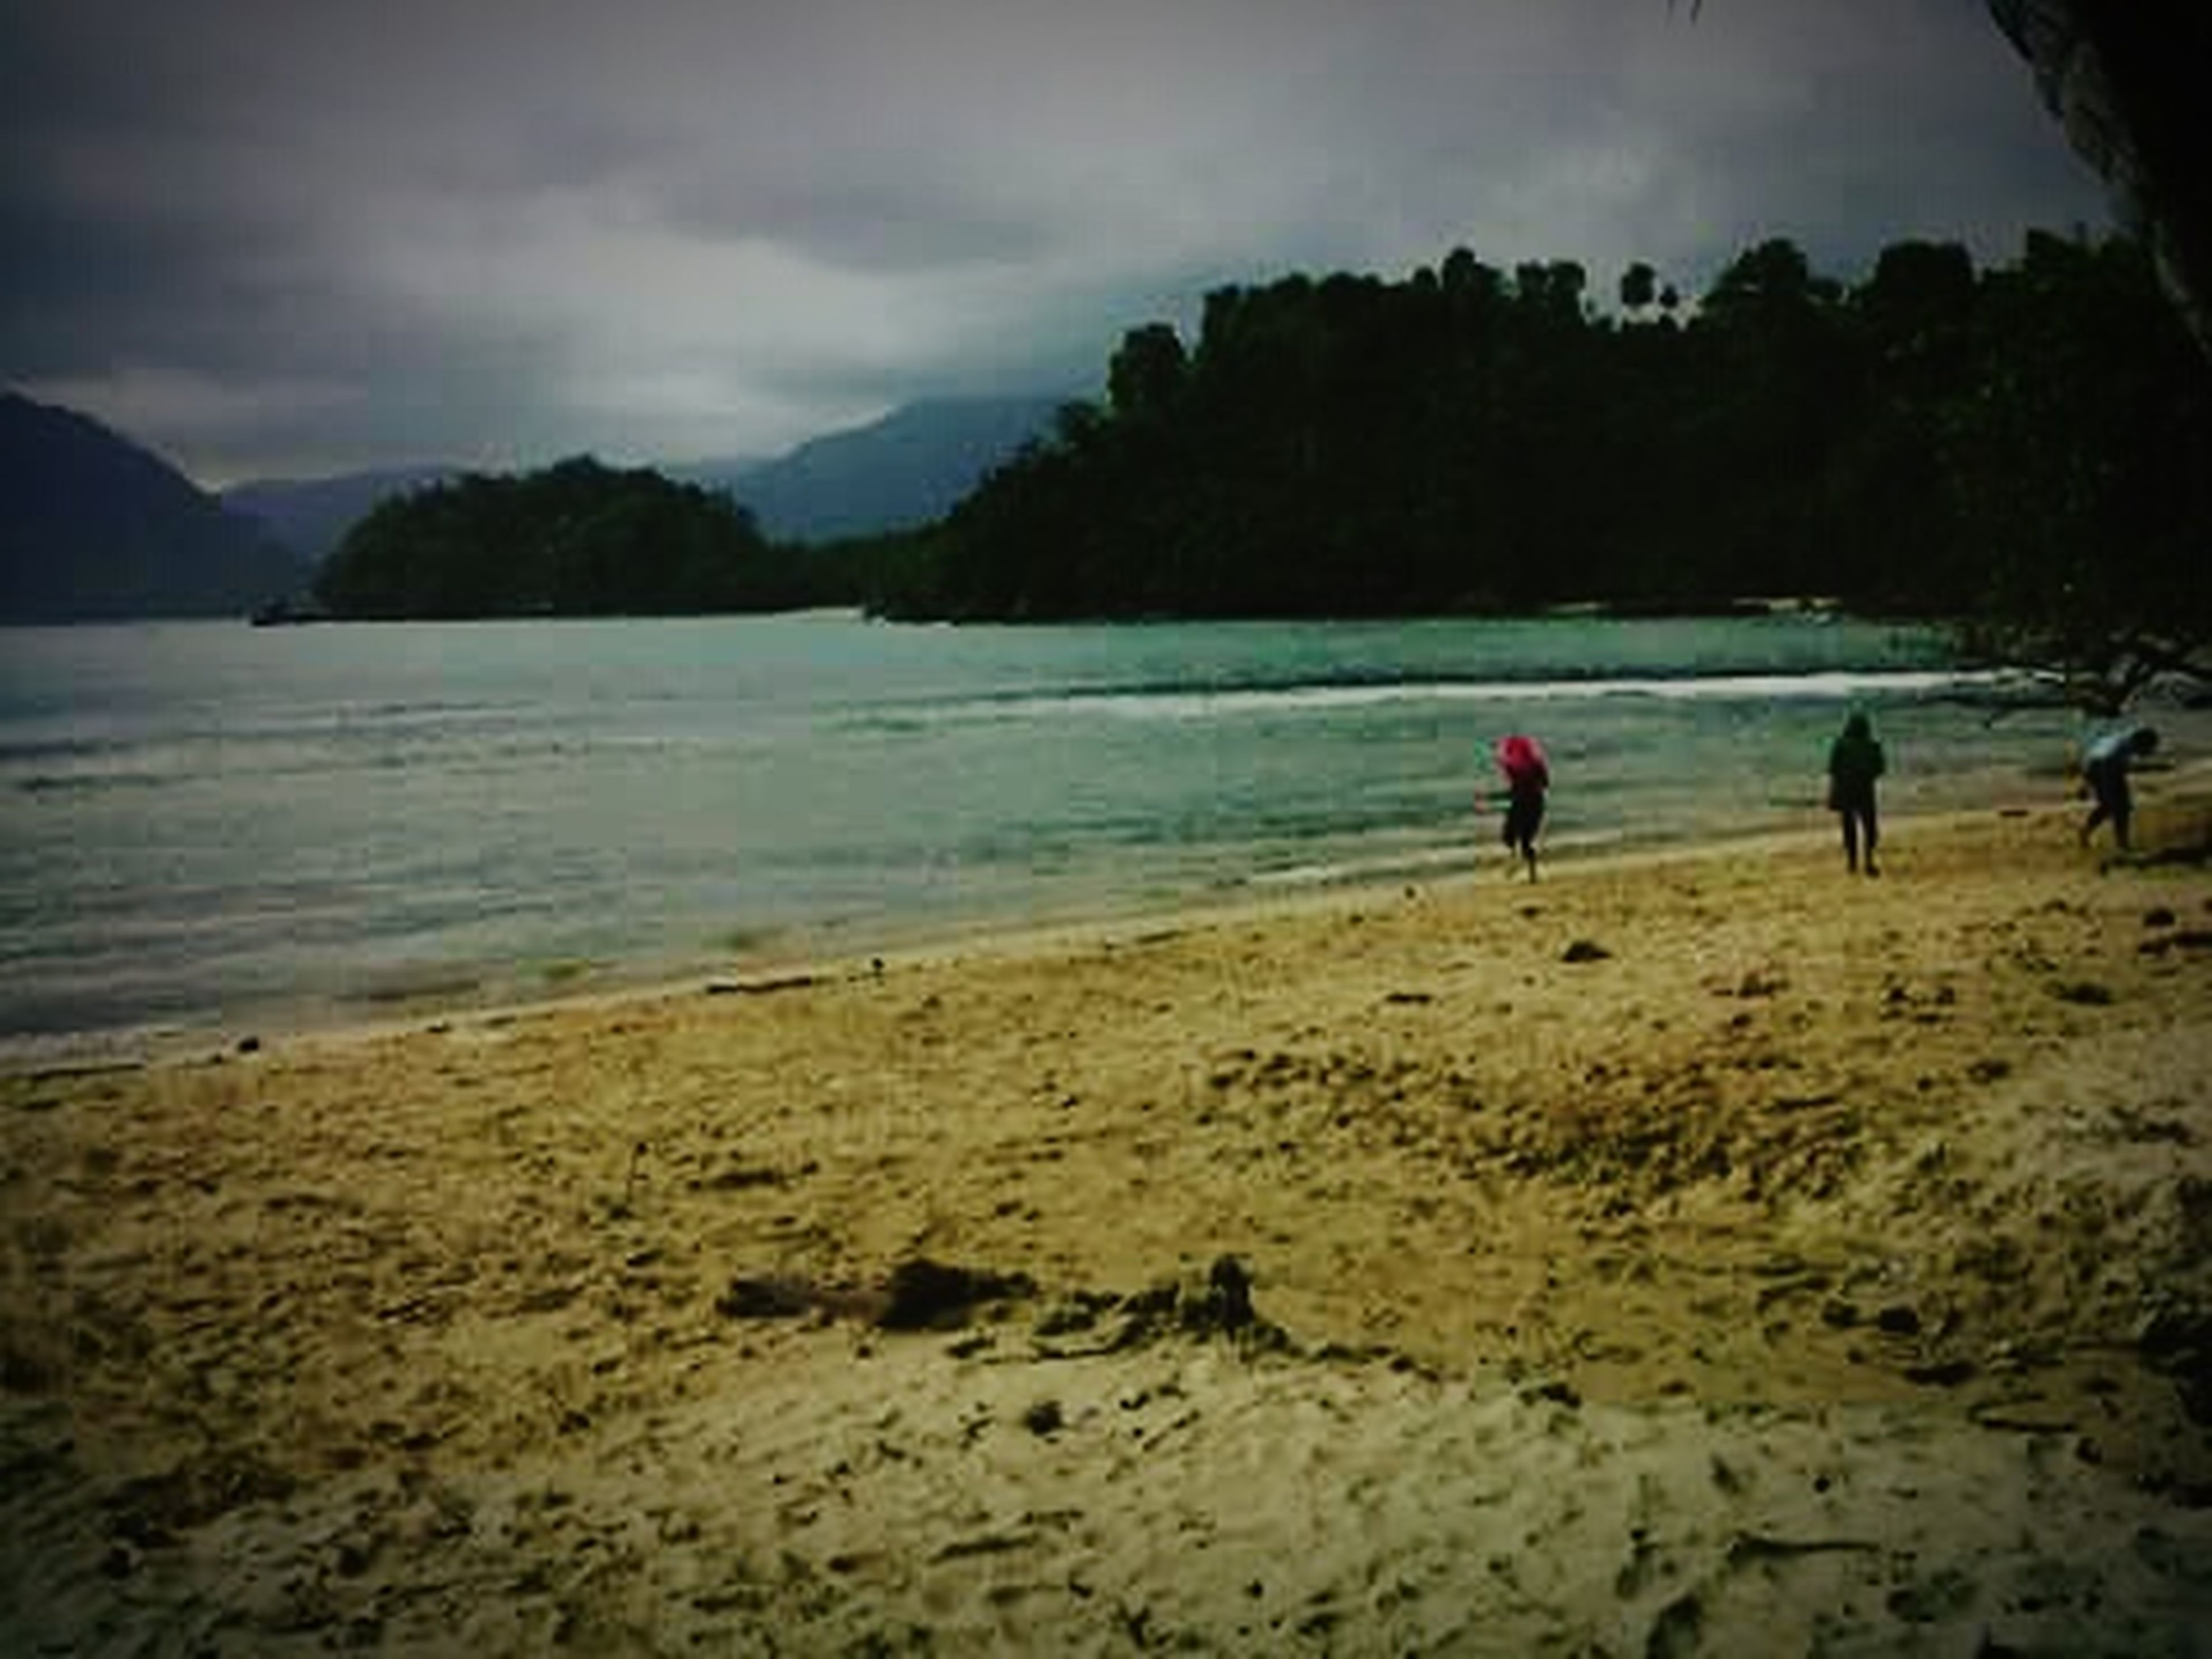 beach, water, sand, sky, shore, tranquil scene, sea, scenics, tranquility, beauty in nature, cloud - sky, leisure activity, nature, mountain, lifestyles, vacations, coastline, idyllic